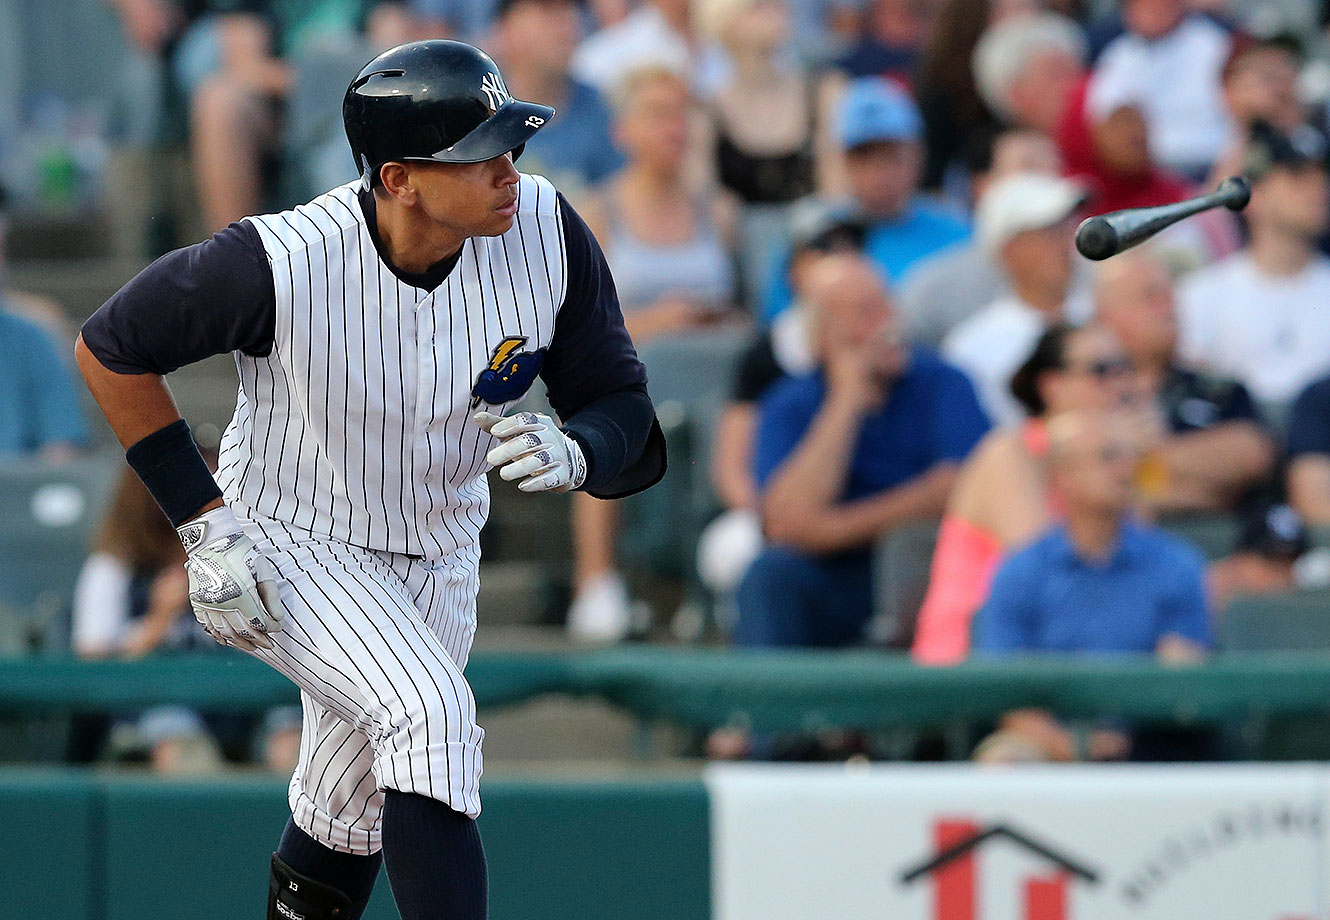 New York Yankees third baseman Alex Rodriguez tosses his bat after hitting a second-inning home run during a minor league rehab game with the Trenton Thunder, against the New Hampshire Fisher Cats on Wednesday, May 25, 2016, in Trenton, N.J.